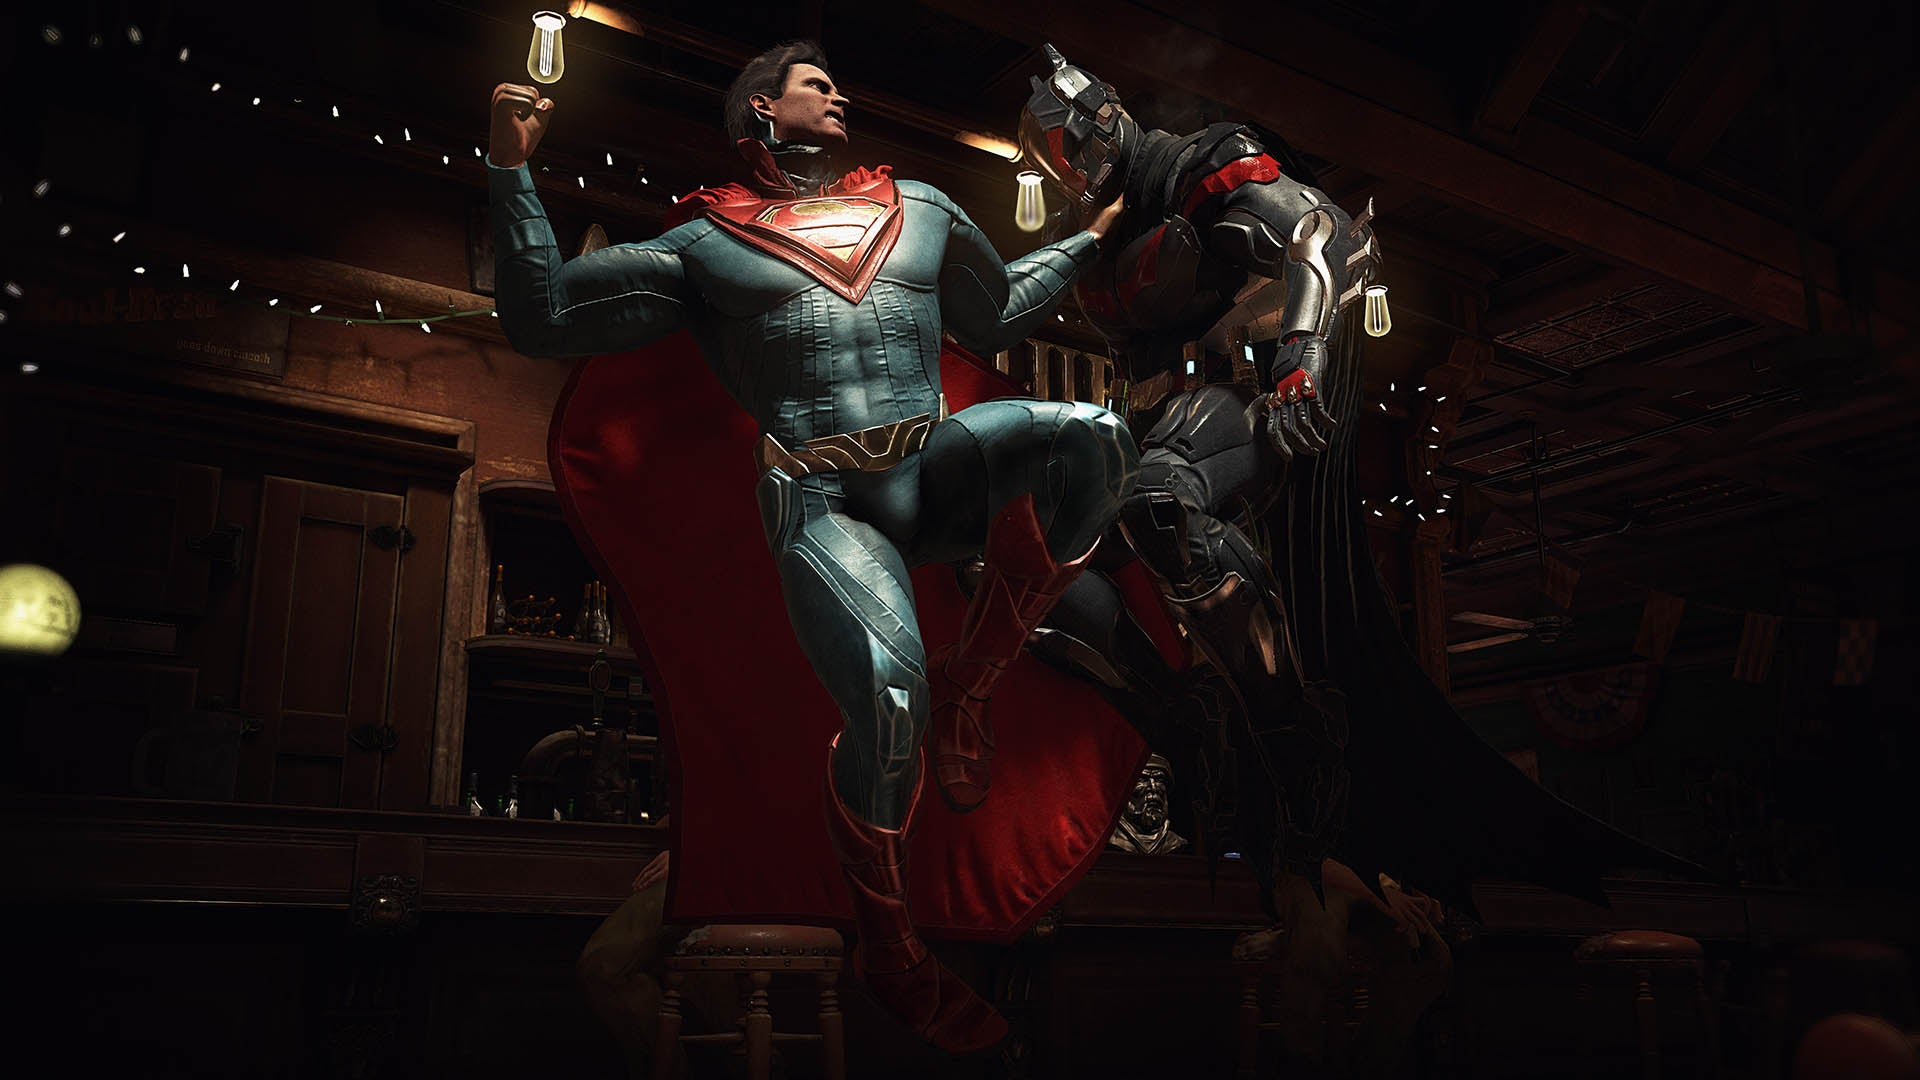 Injustice 2 Move List Guide Command Inputs For All Heroes